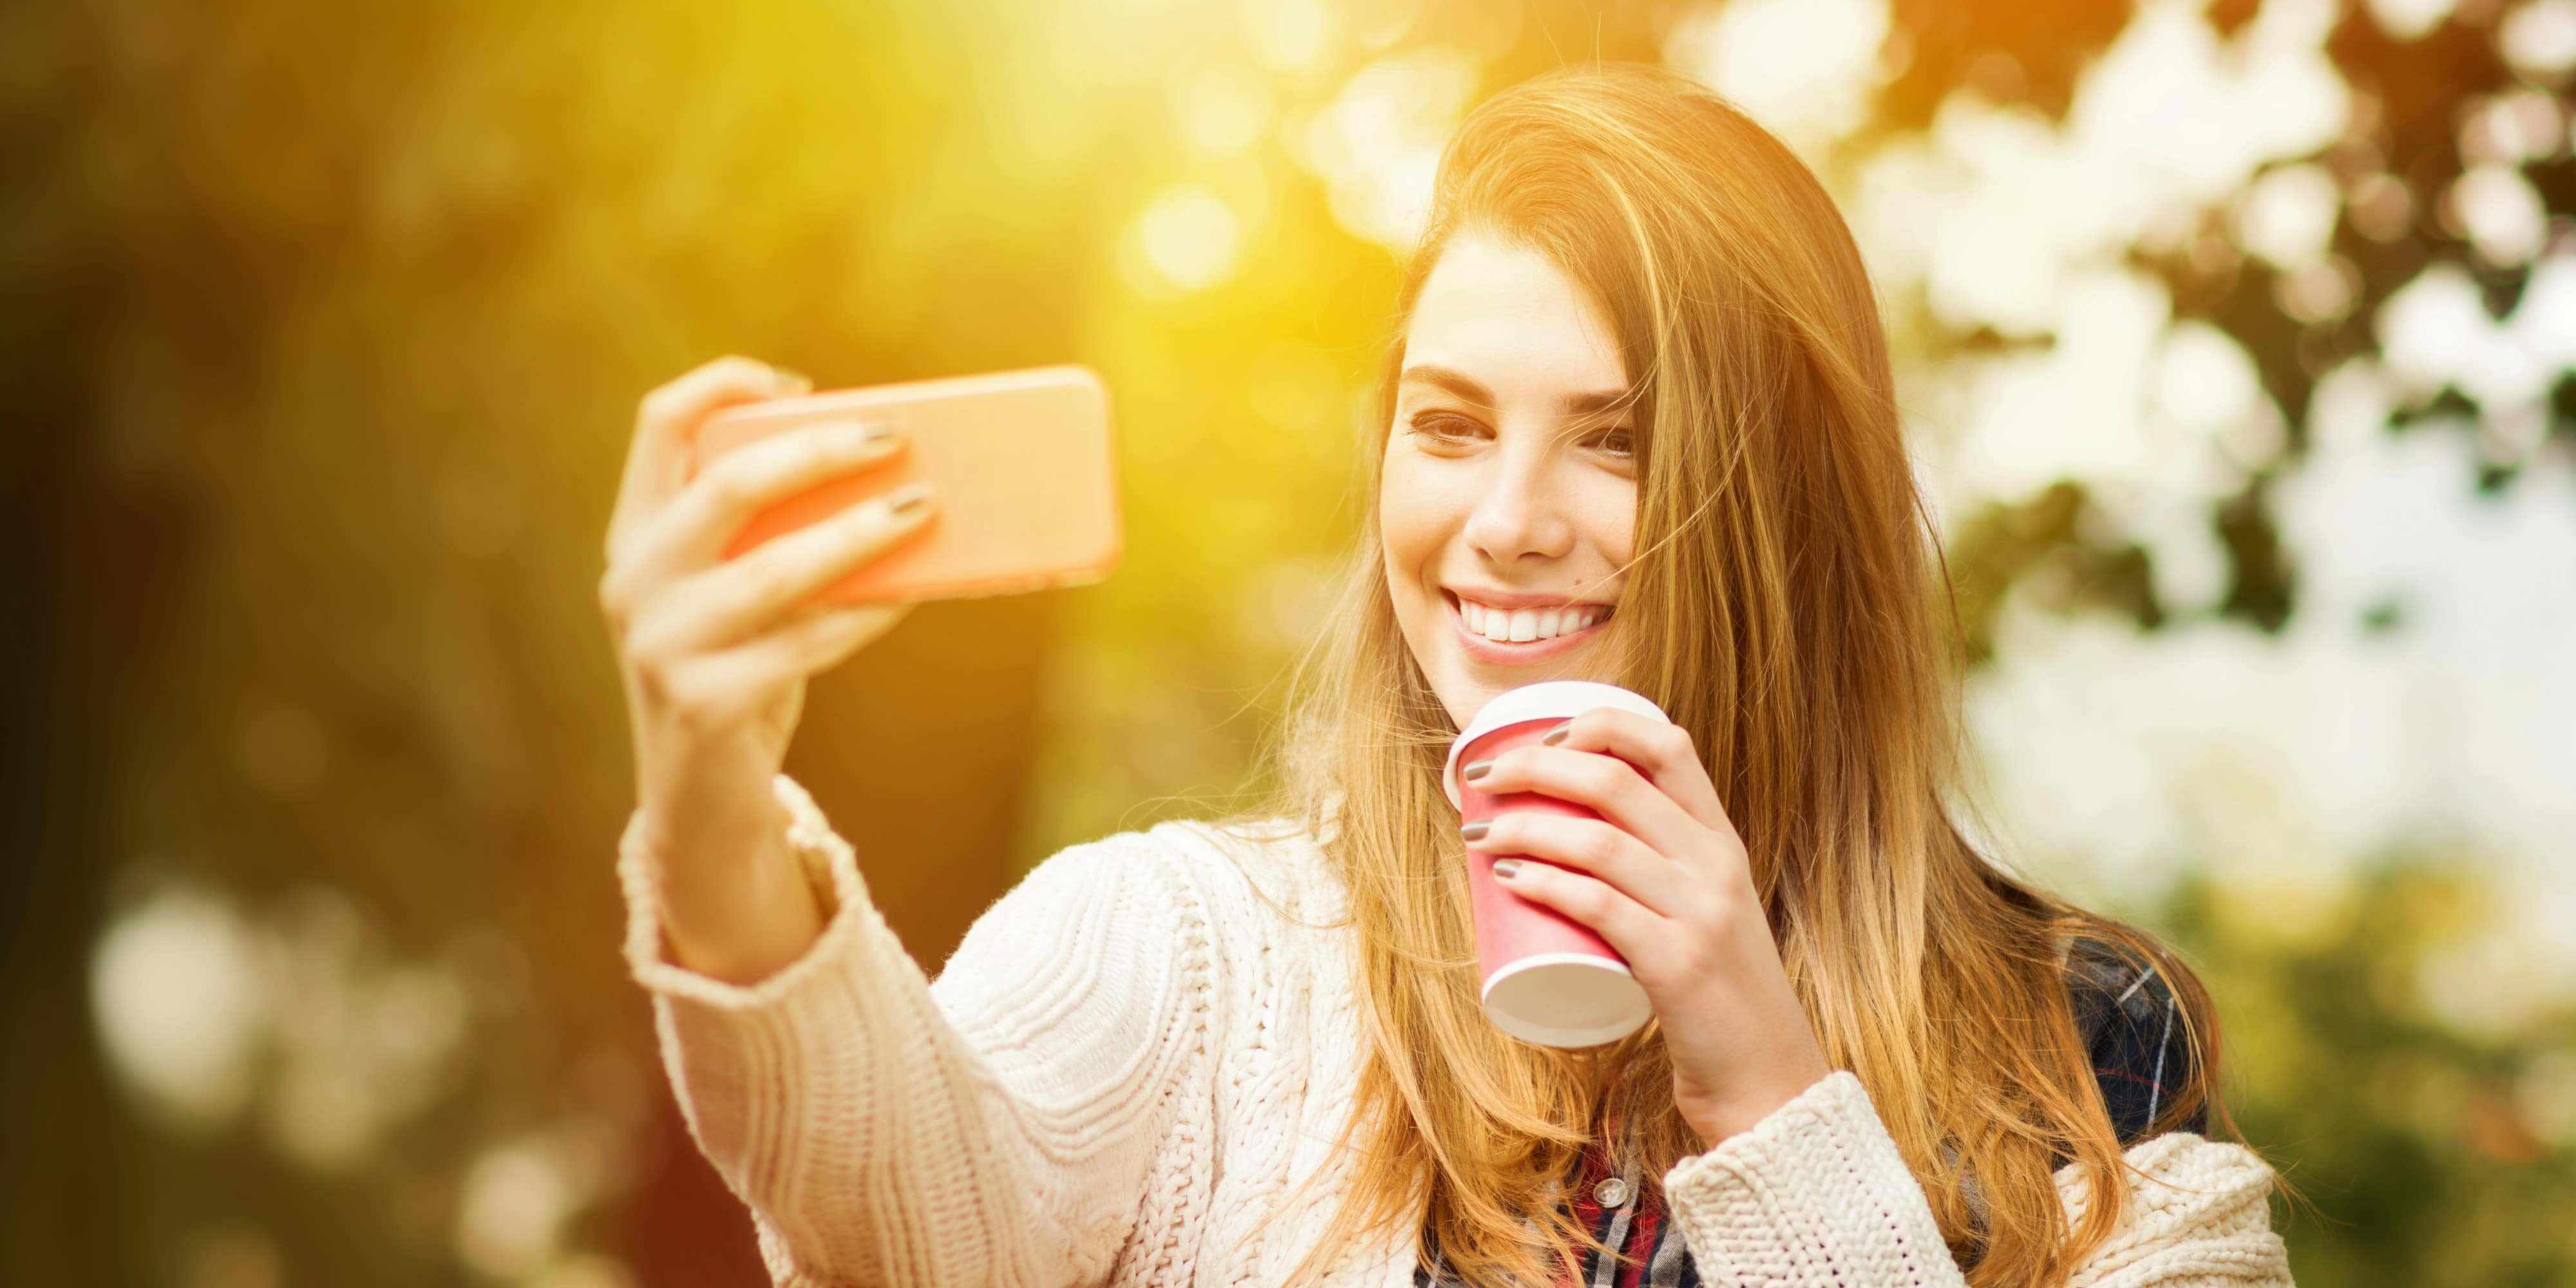 Fall Flavors College DormTopper Girl Taking a Selfie